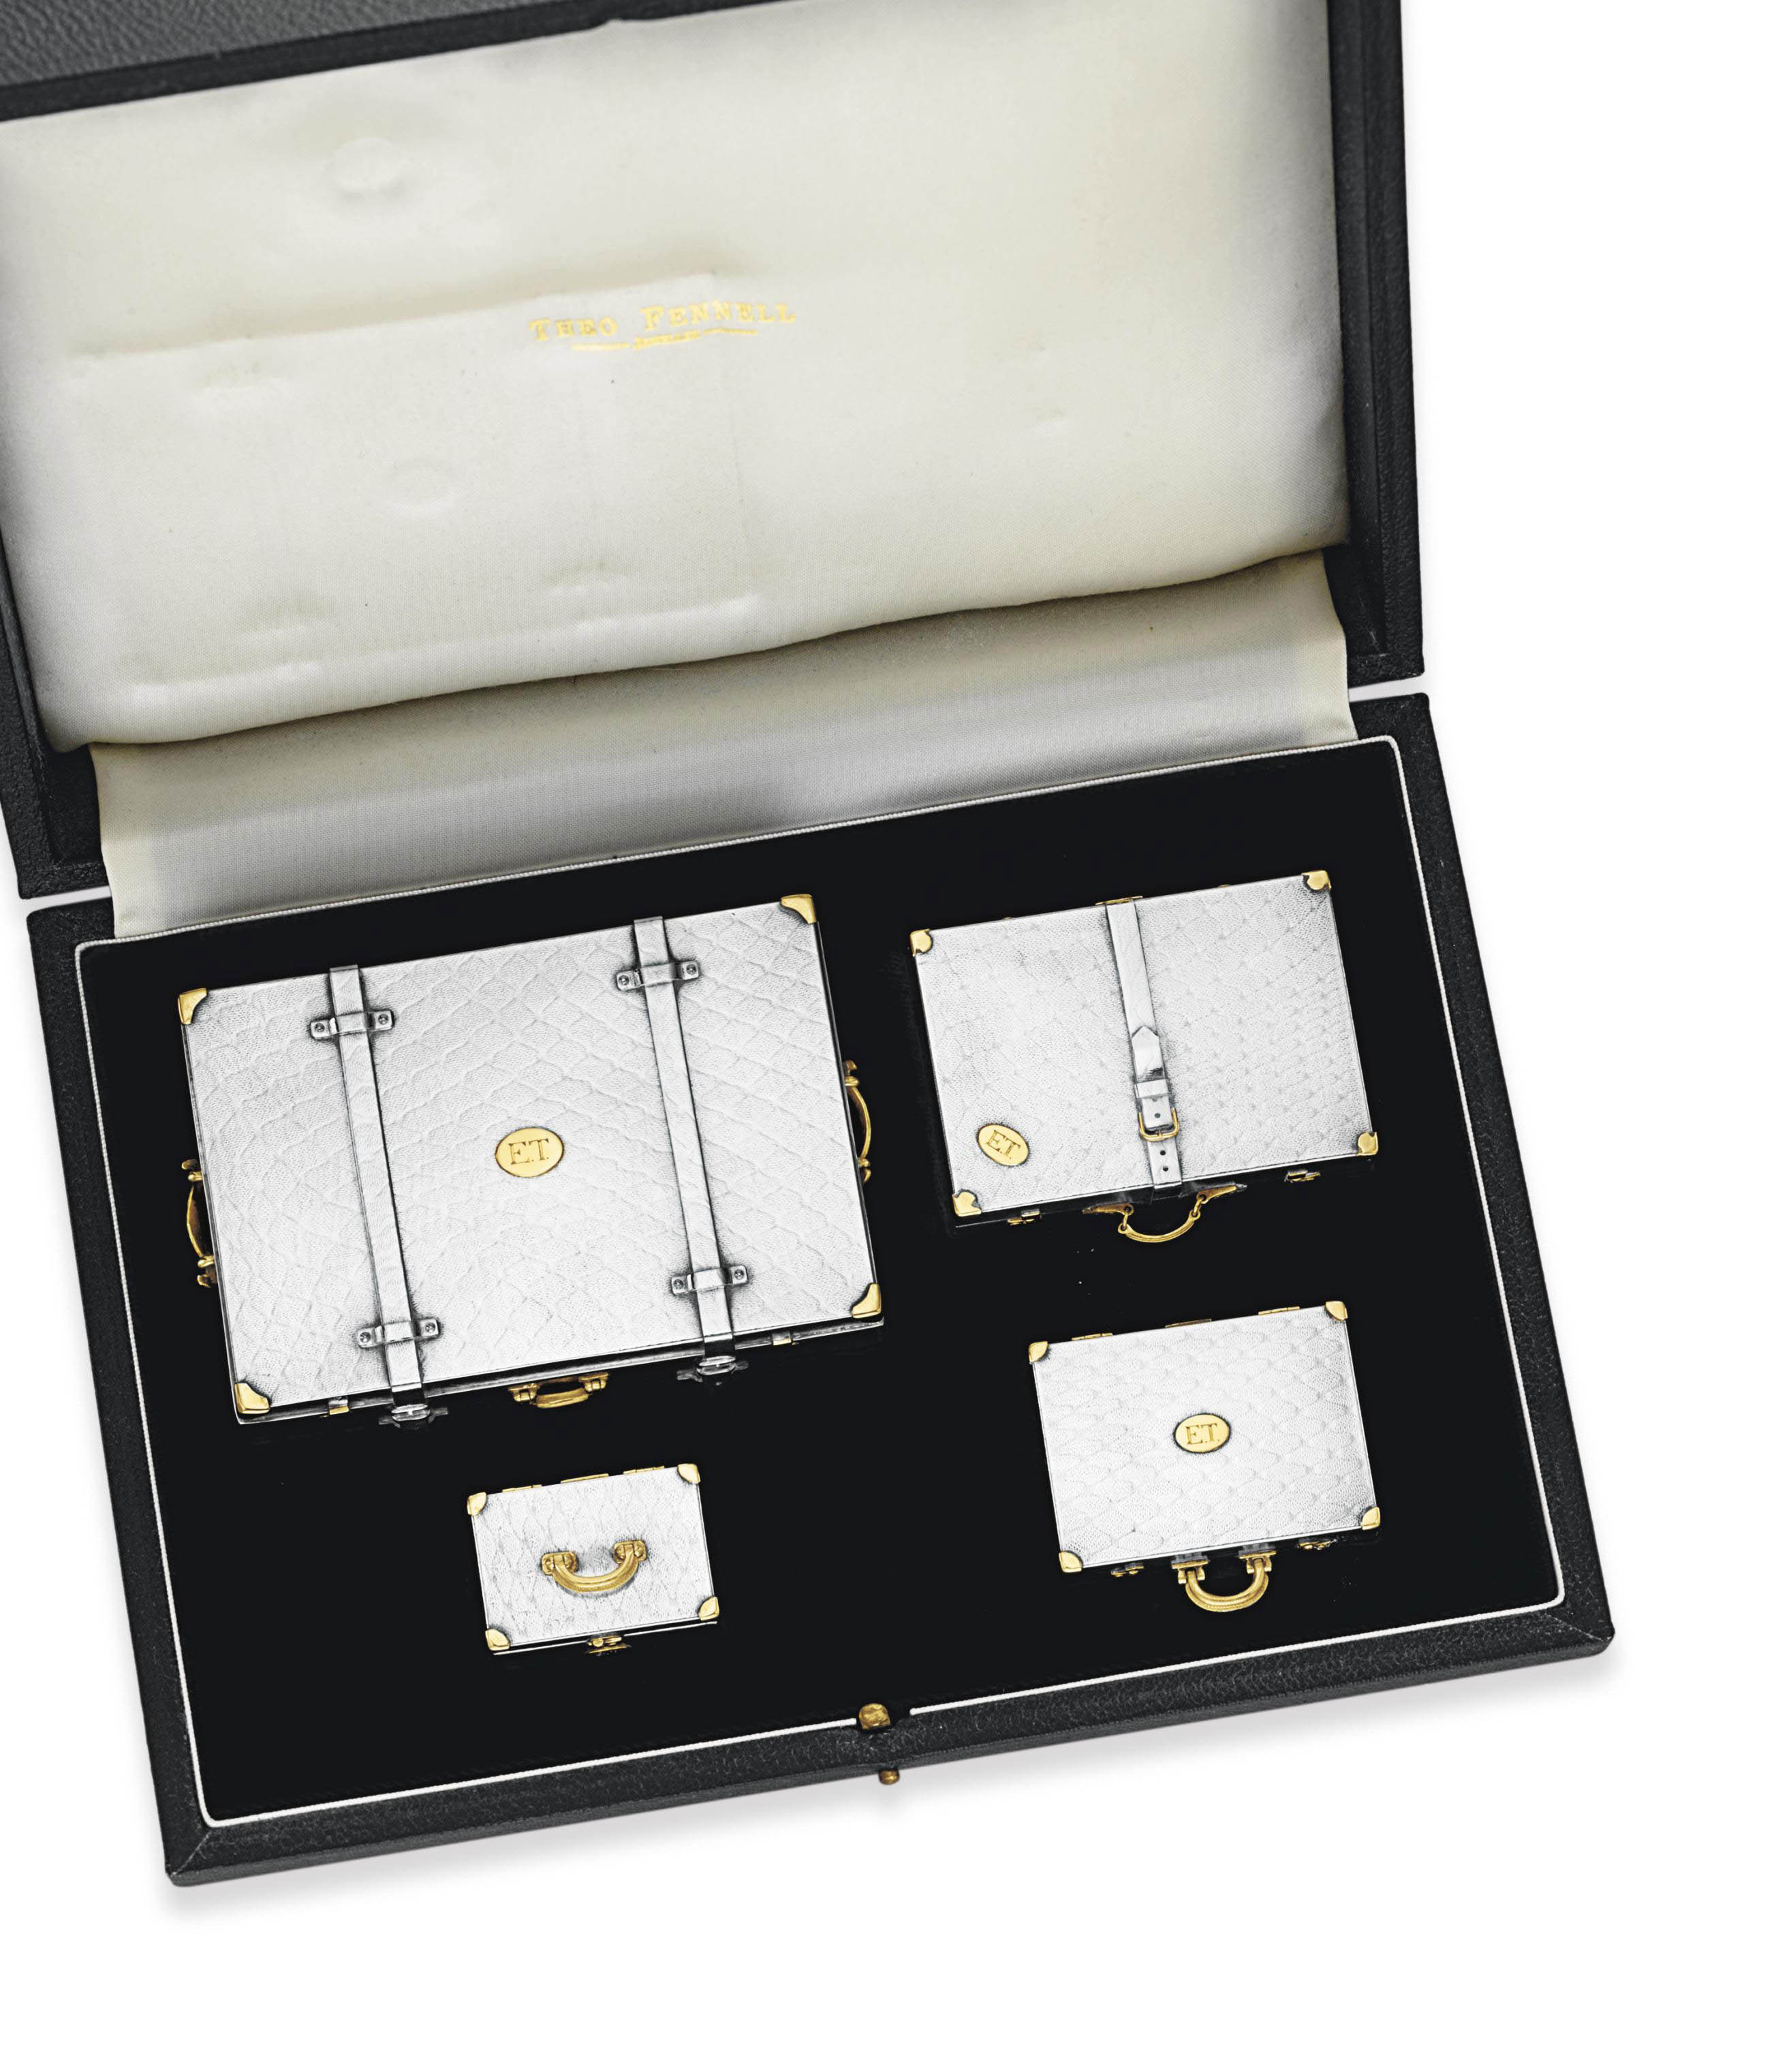 A SET OF SILVER AND GOLD BOXES, BY THEO FENNELL